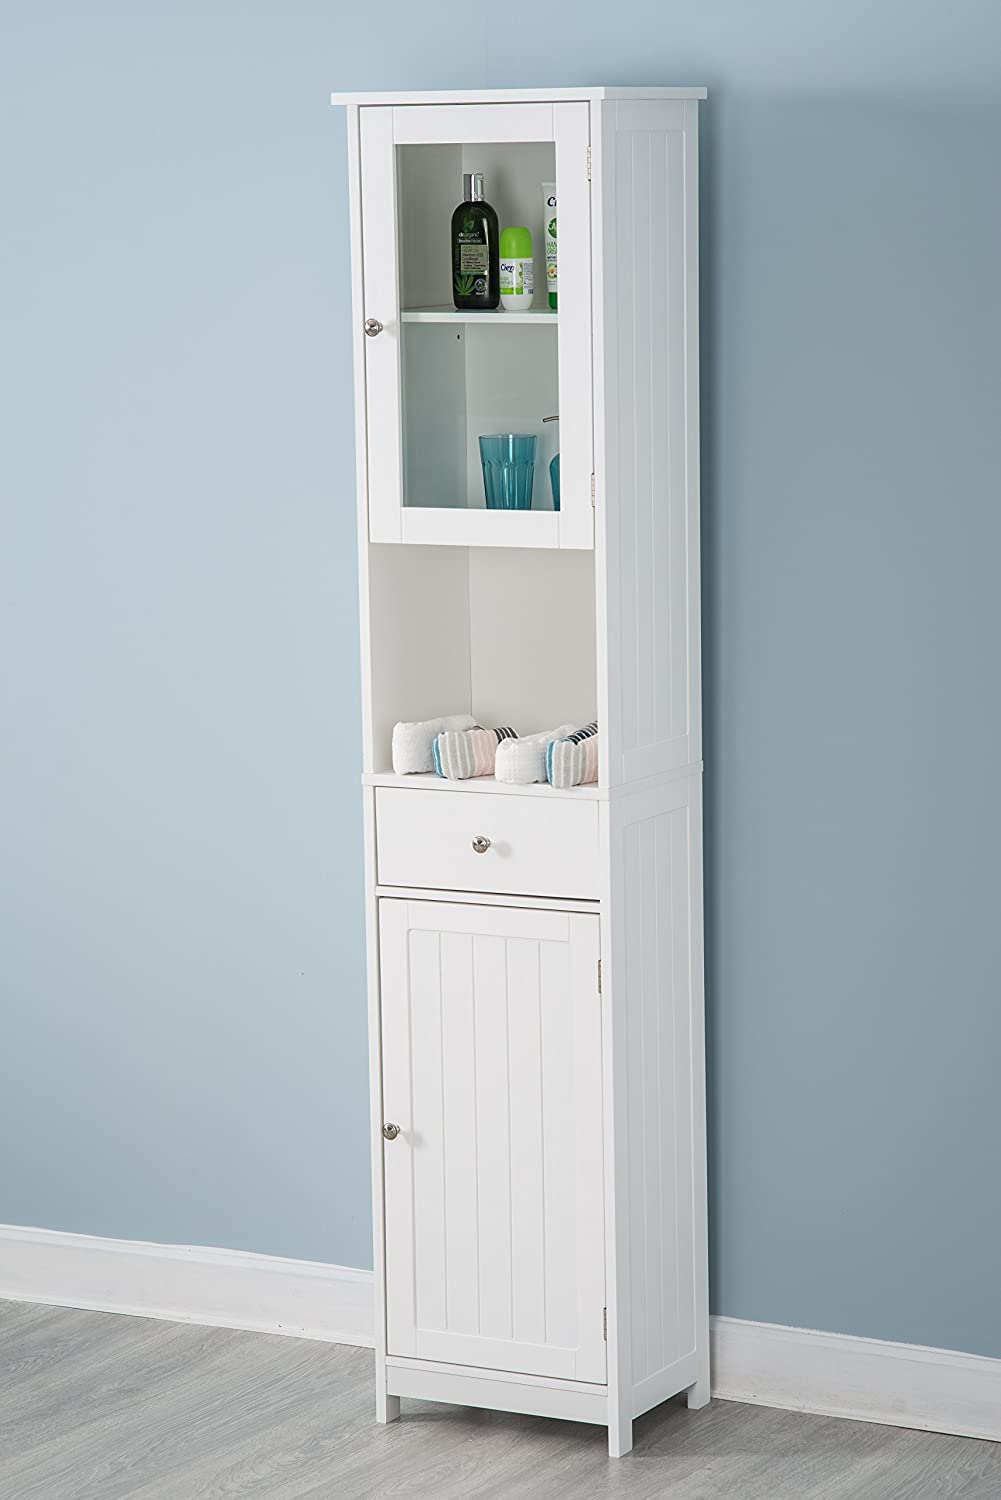 YAKOE Tall Bathroom Storage Unit Wood Tallboy Cabinet Cupboard ...